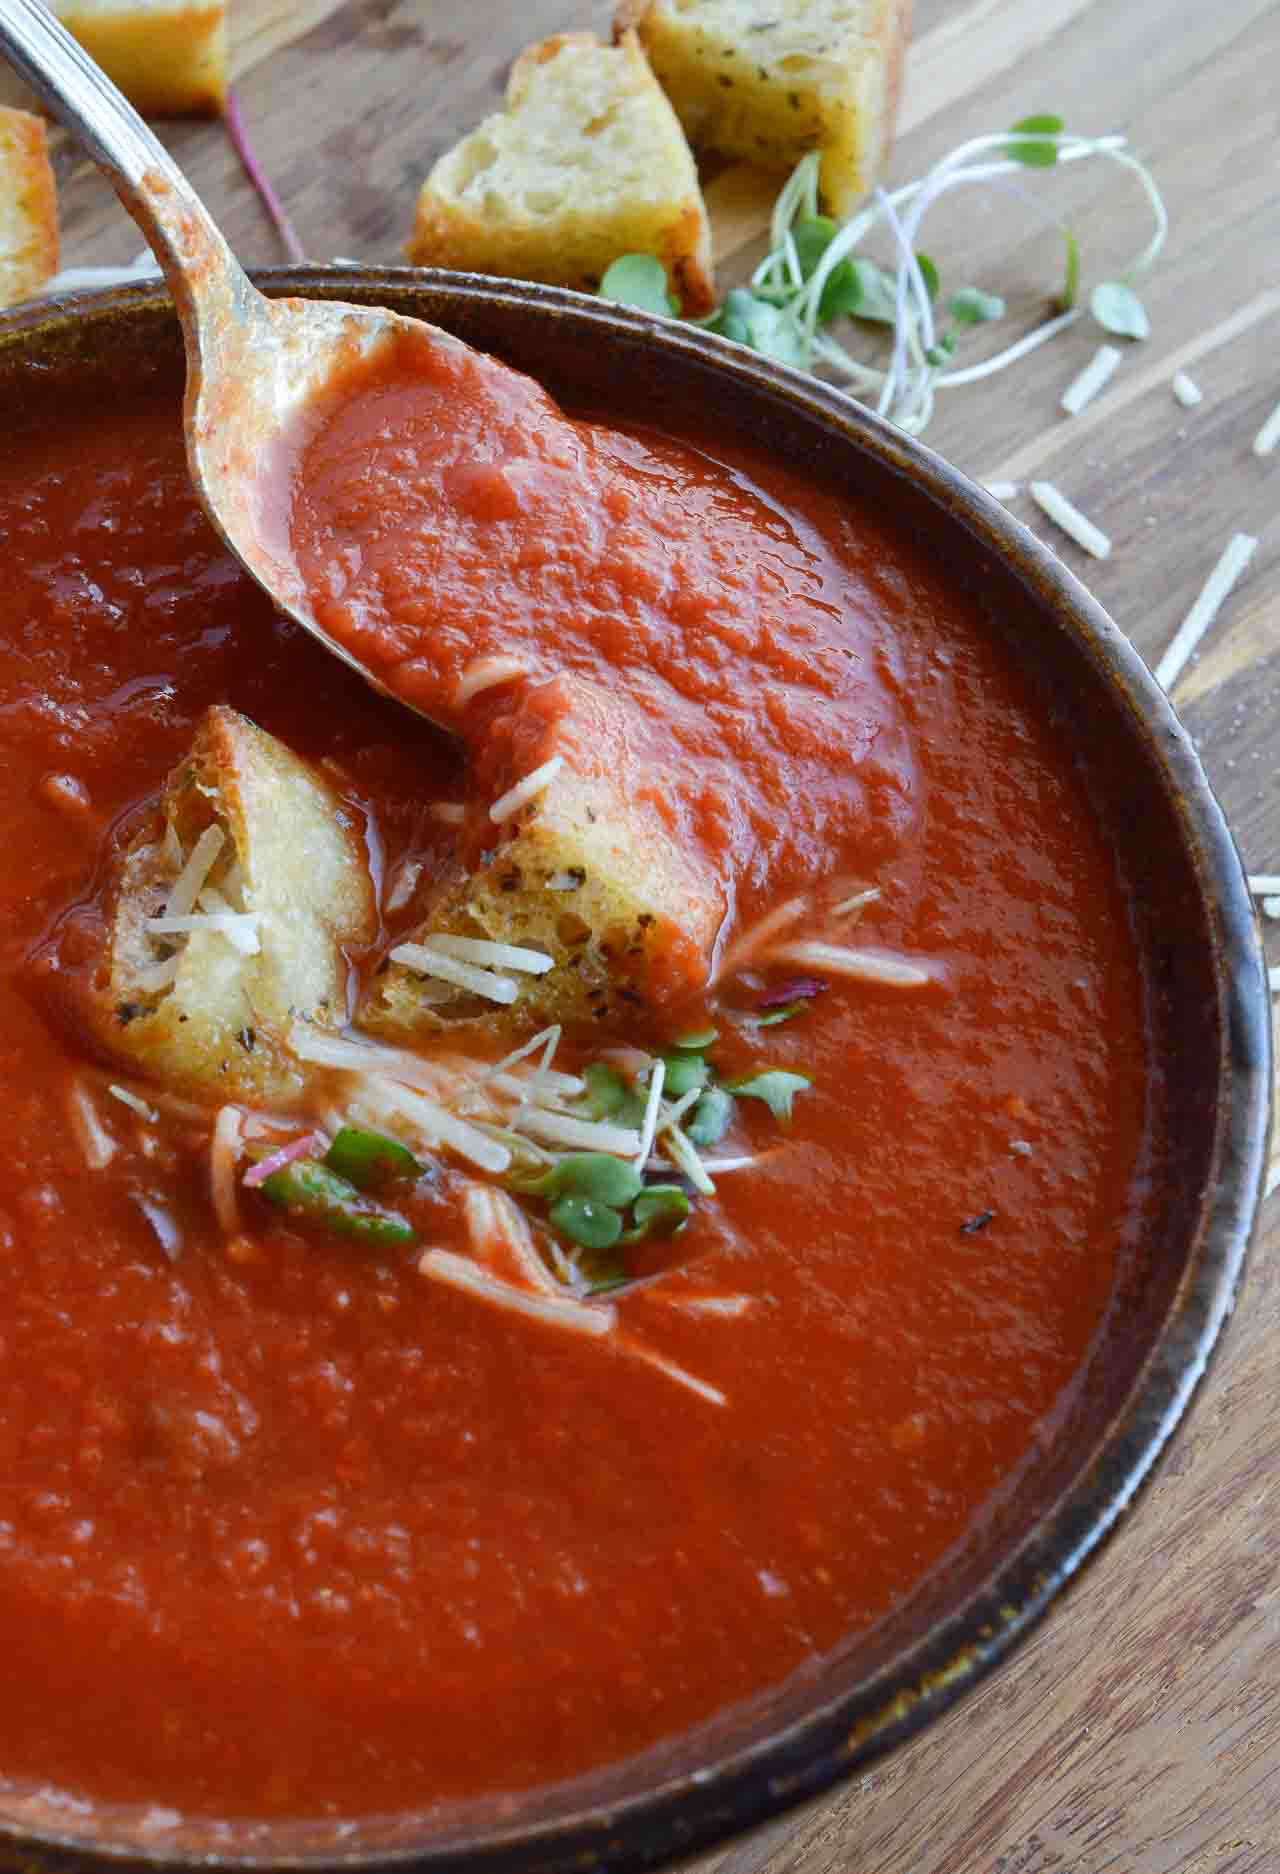 This Easy Tomato Soup Recipe is comfort food at it's best and just 3 ingredients! San Marzano Tomatoes and roasted garlic take this family favorite to the next level! Enjoy a bowl of this healthy homemade soup for lunch or dinner. And instead of sugar I use a secret ingredient to add a hint of sweet . . . spoiler, it is carrot juice!